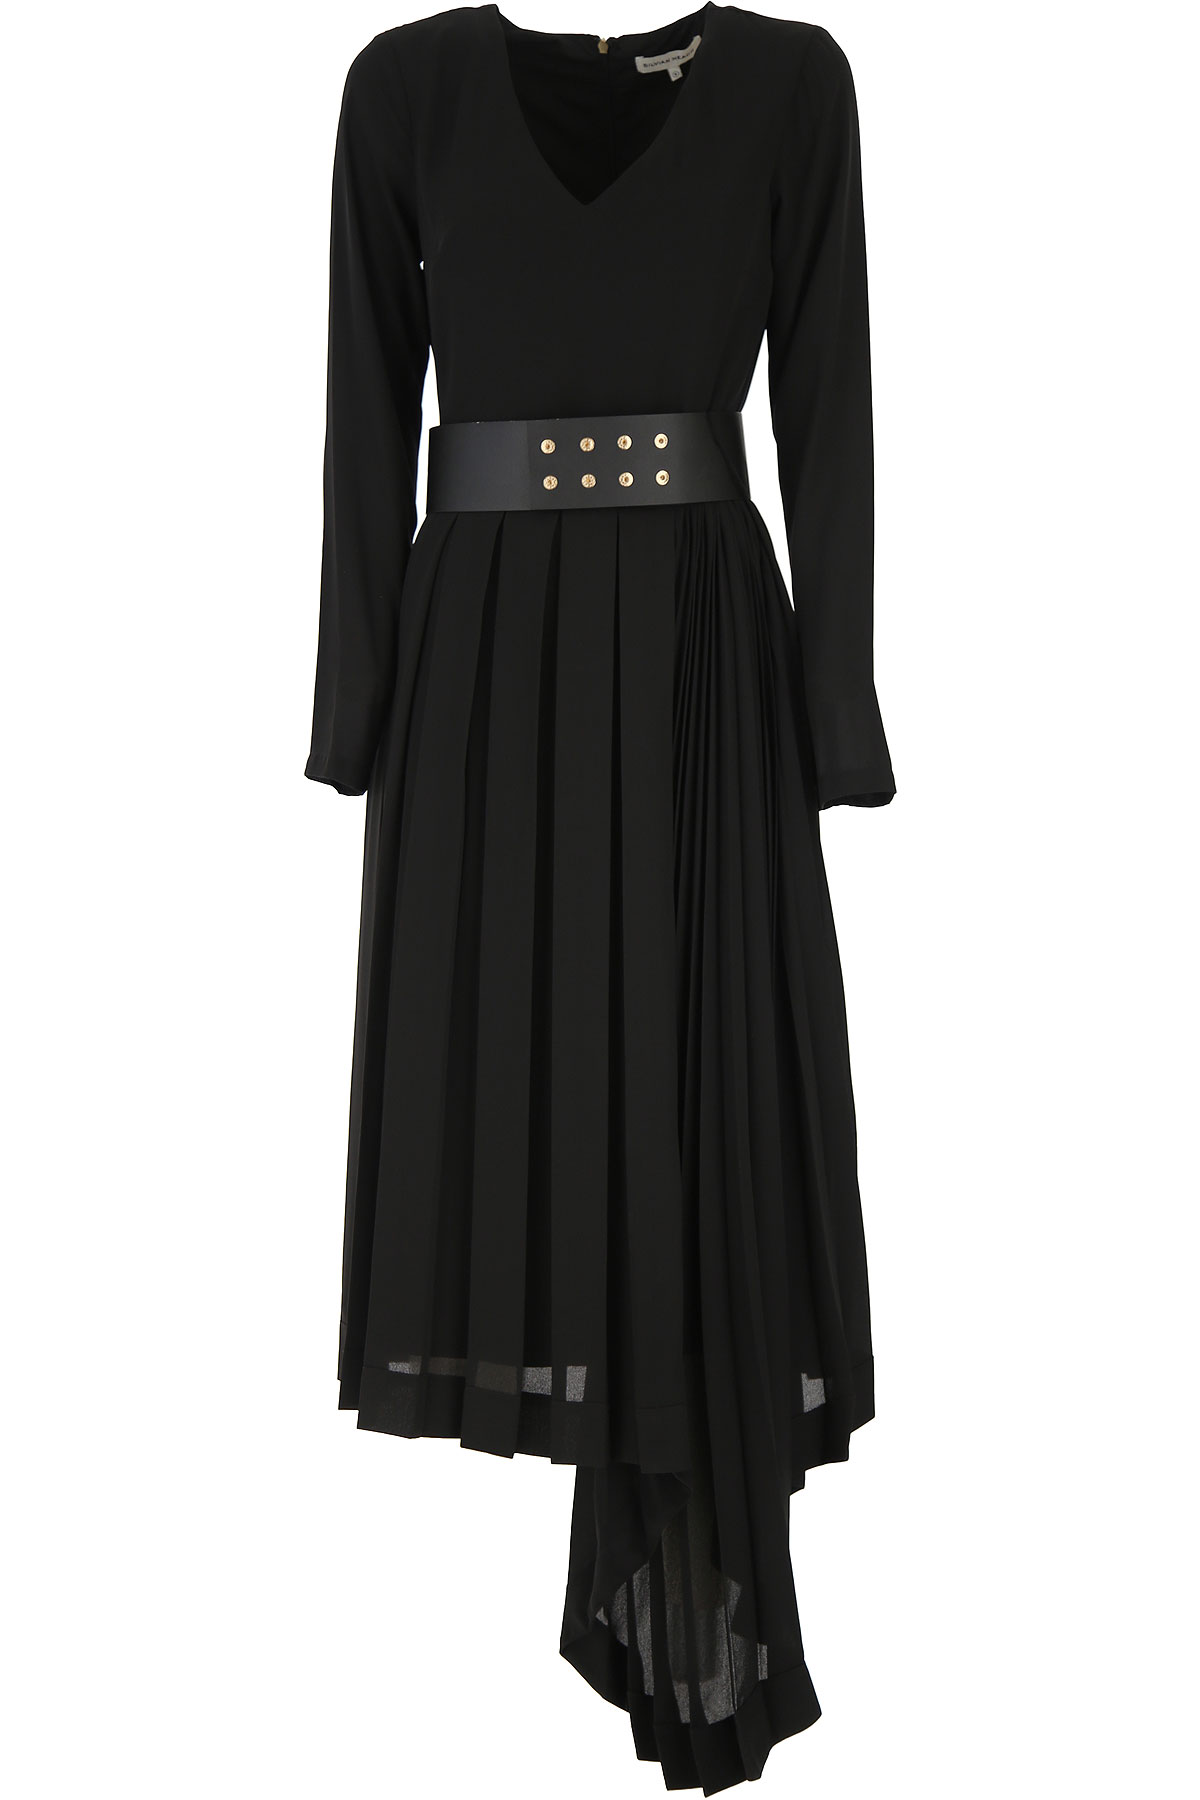 Silvian Heach Dress for Women, Evening Cocktail Party On Sale, Black, polyester, 2019, 2 4 6